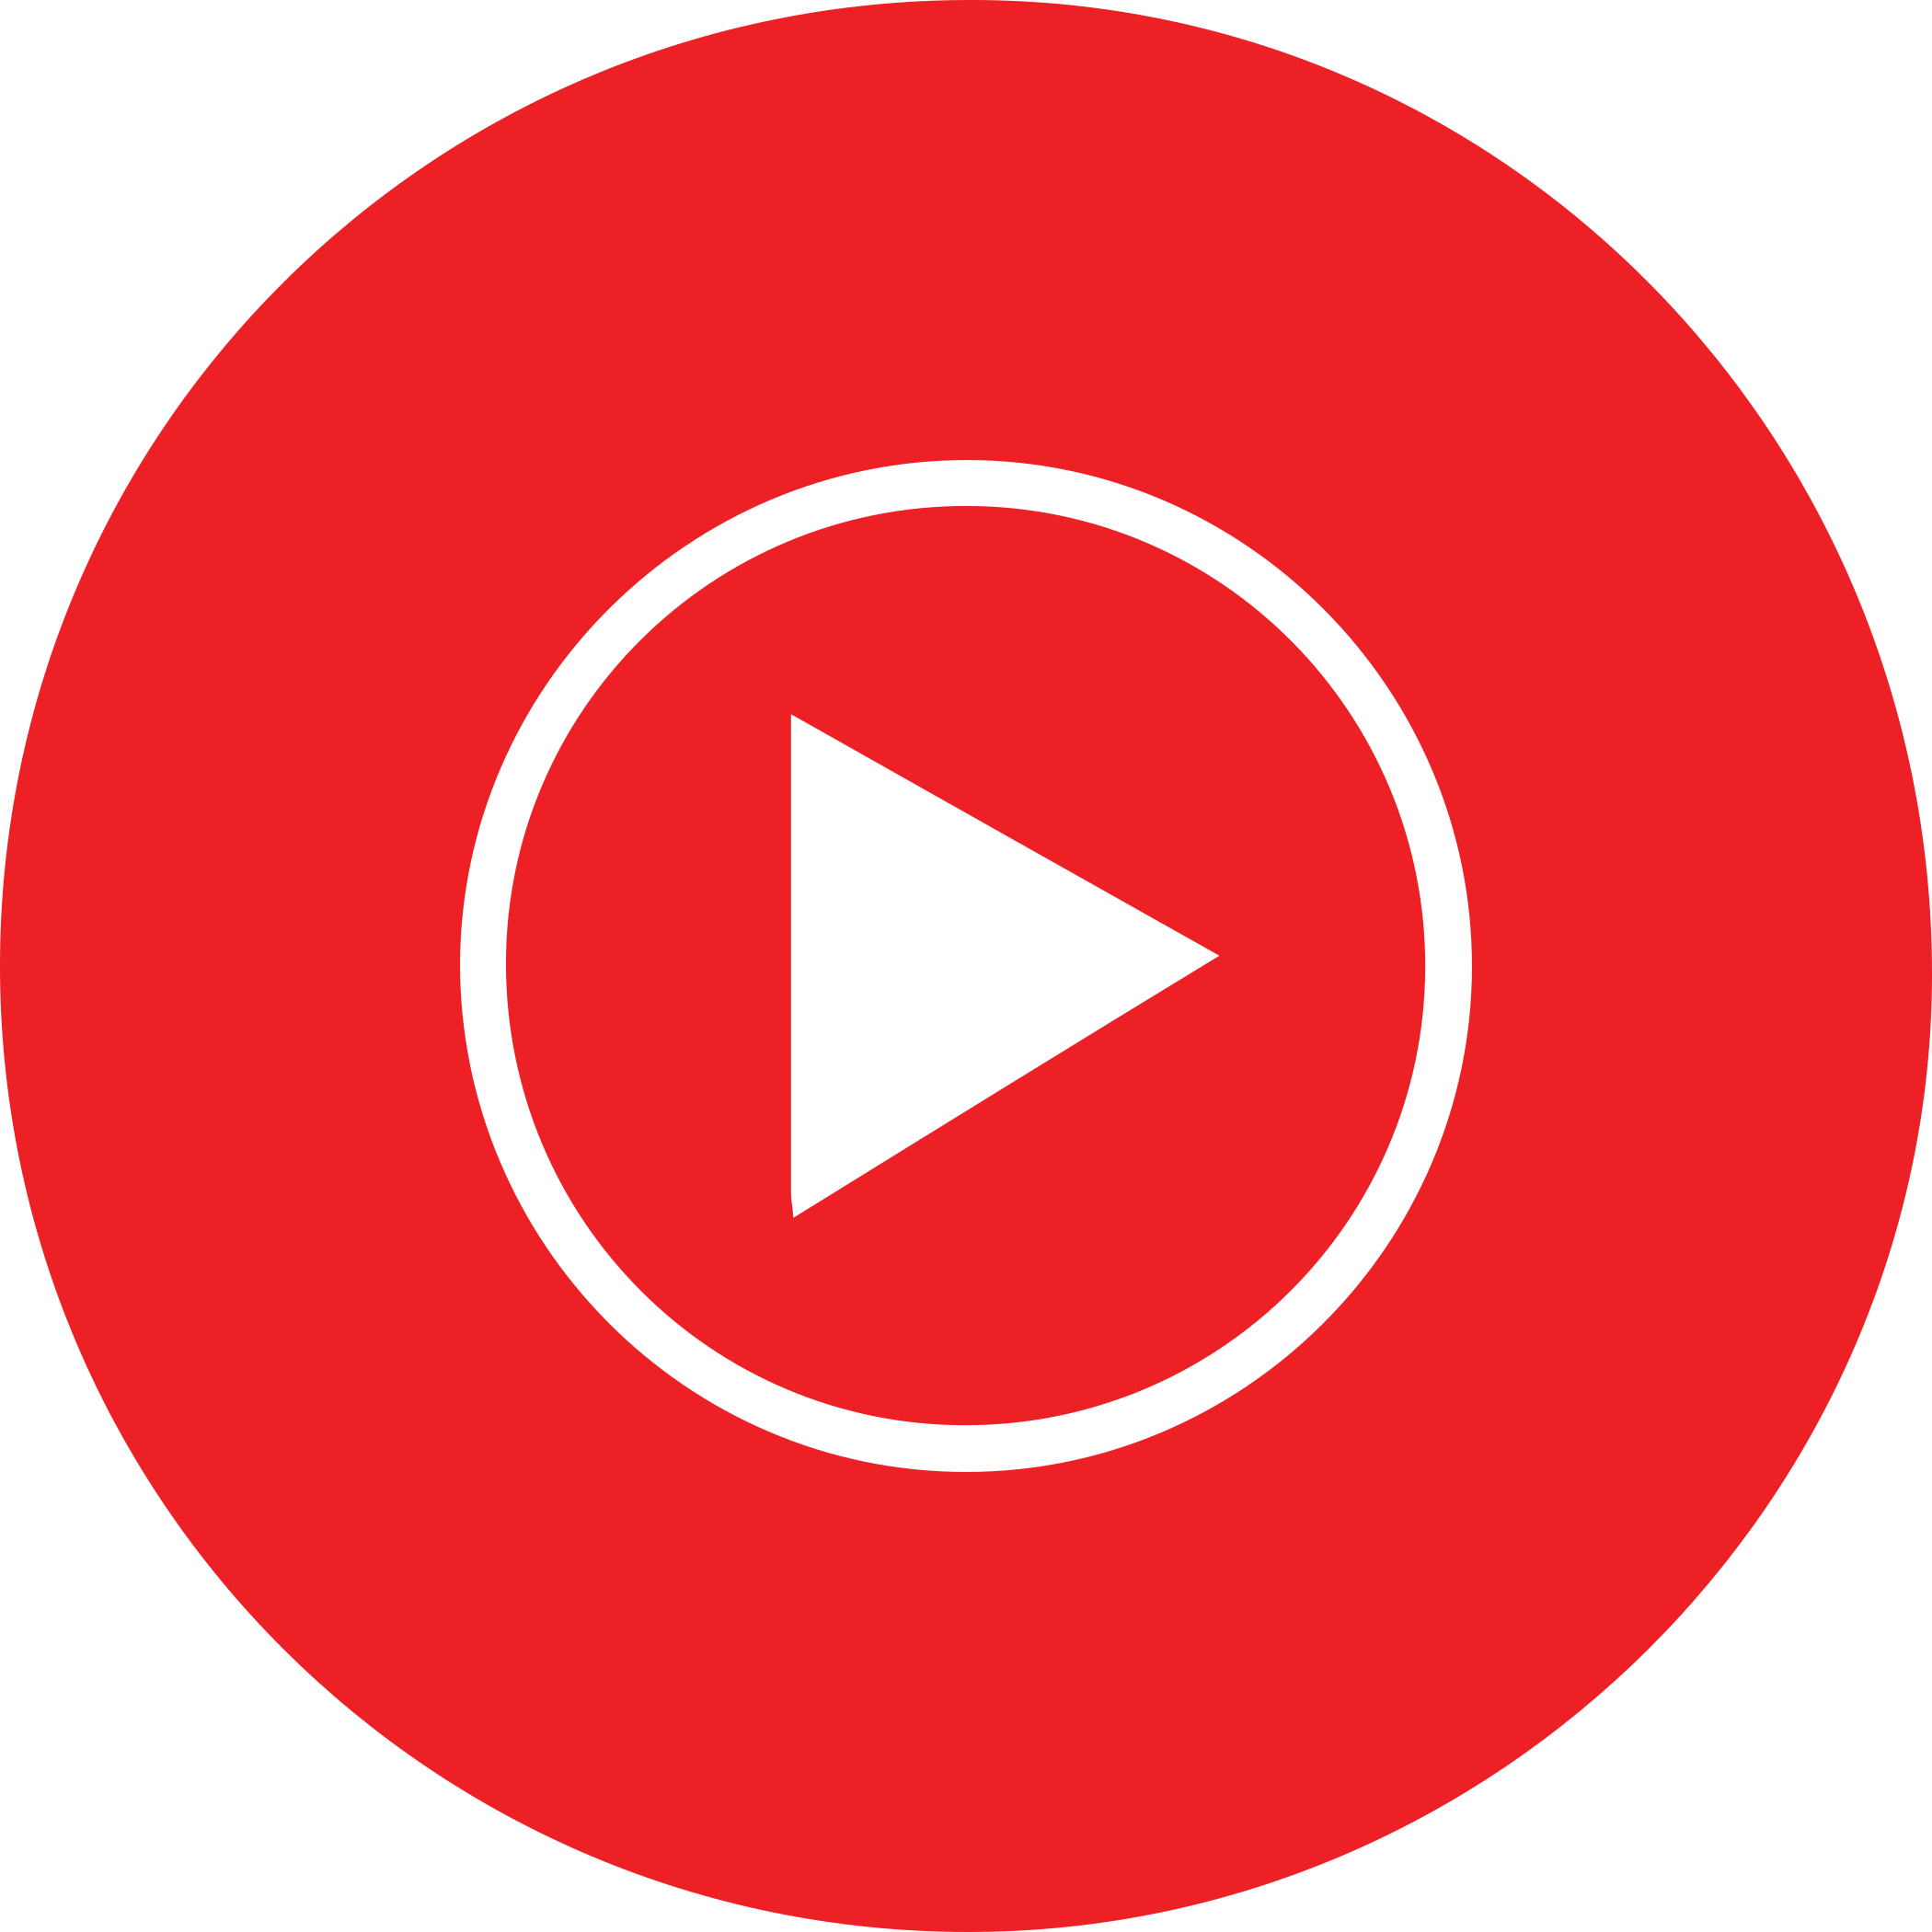 Youtube Music Logo - PNG e Vetor - Download de Logo